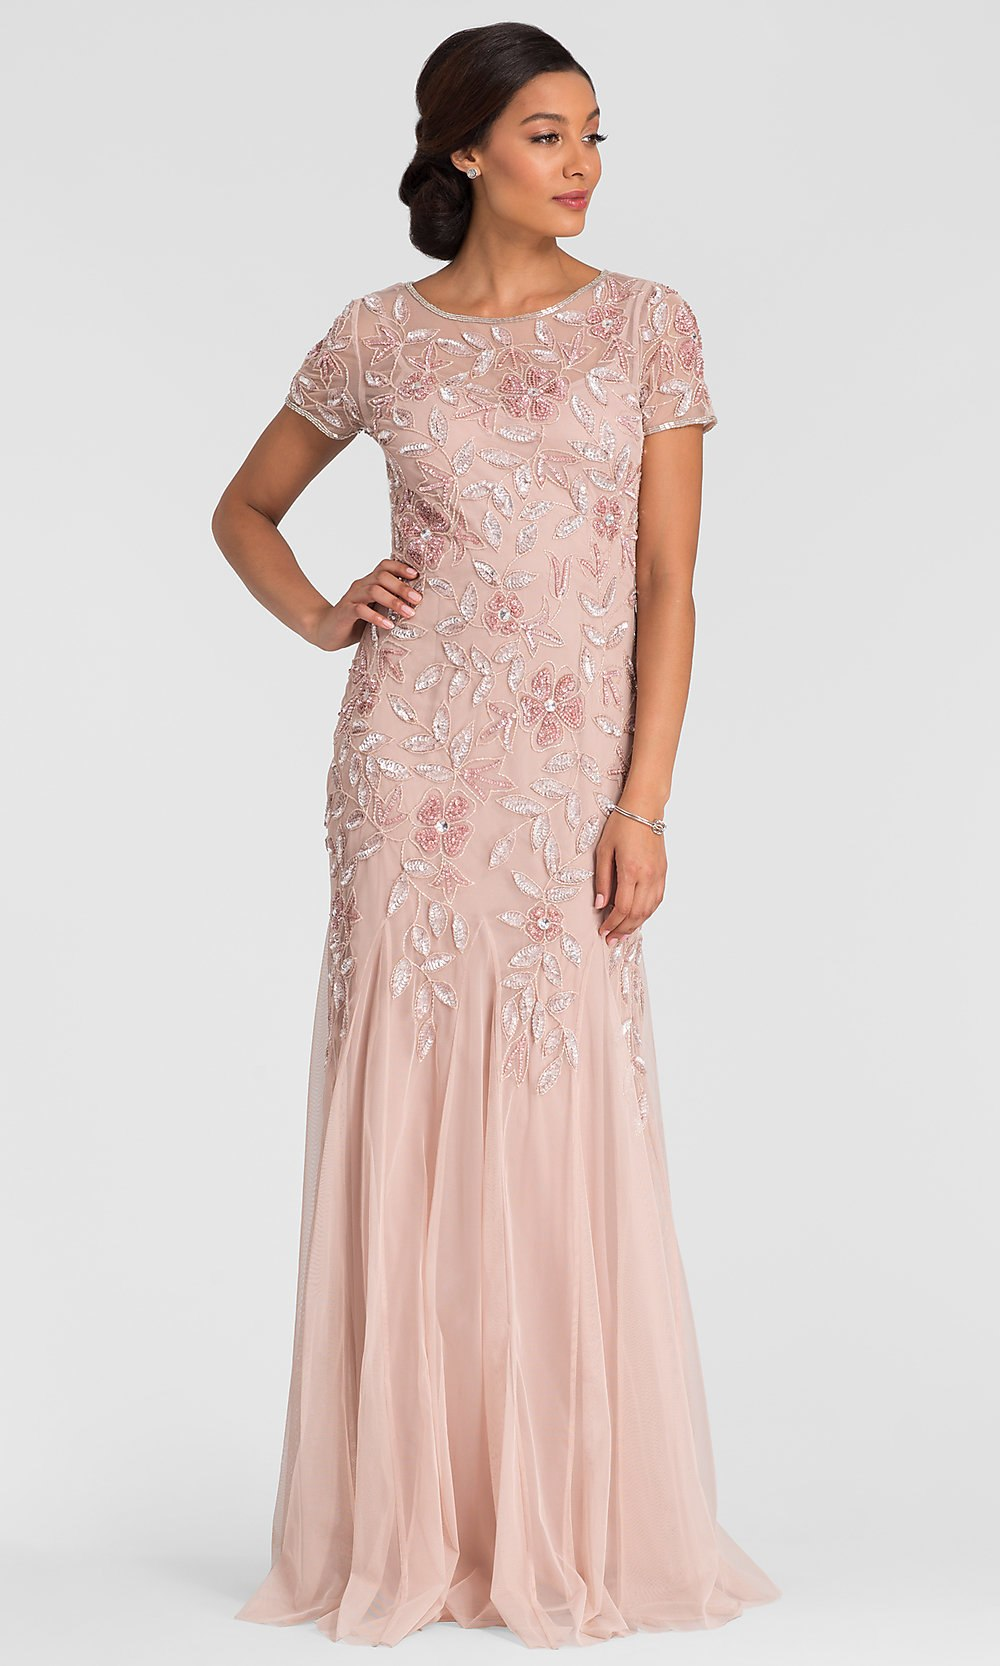 6990795314 Adrianna Papell Floral Beaded Godet Gown - Blush Pink - Adinas Bridal